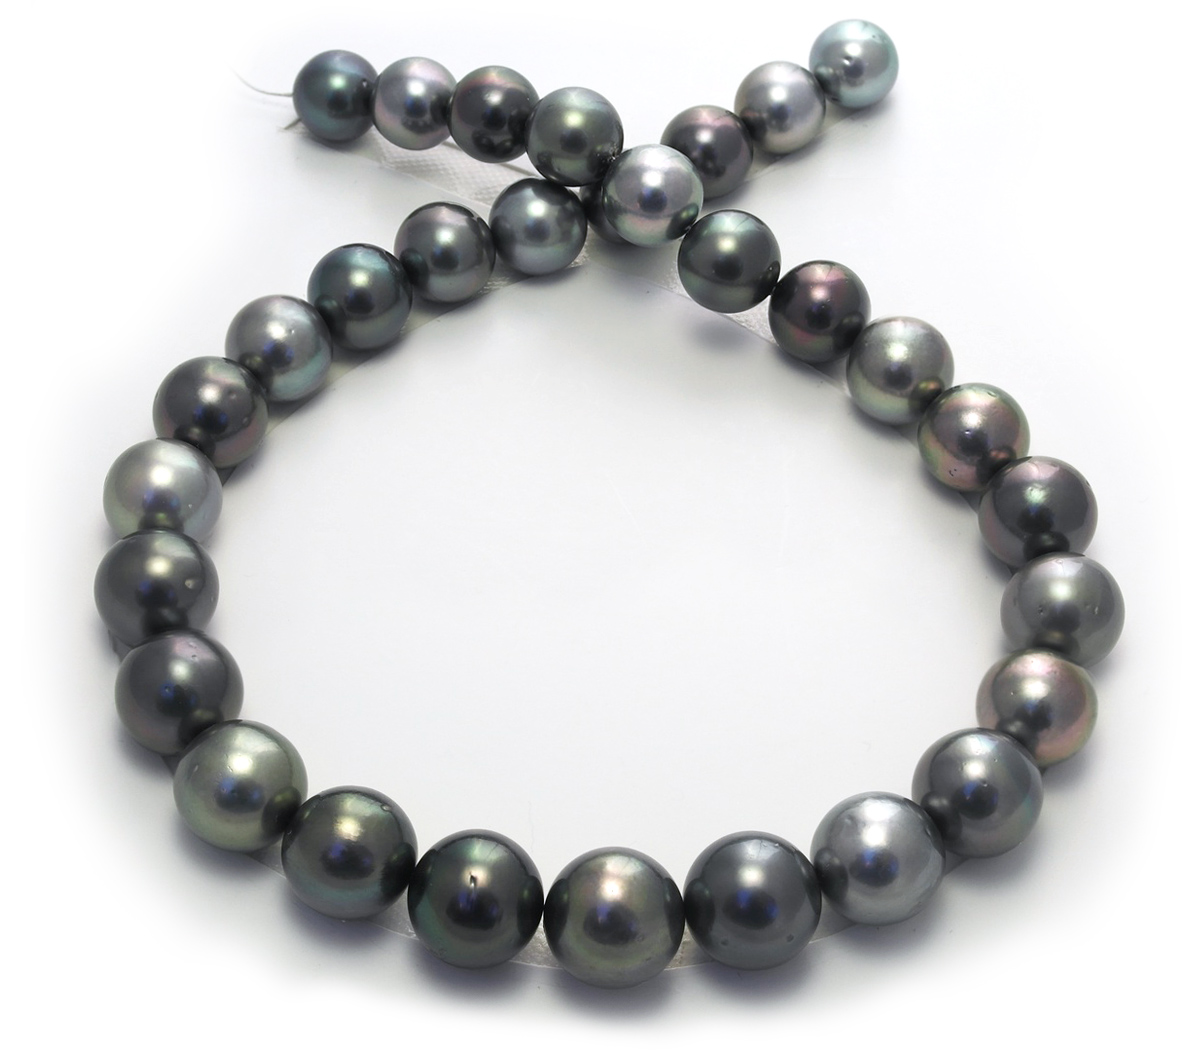 multicolor tahitian pearl necklace with 12 15mm